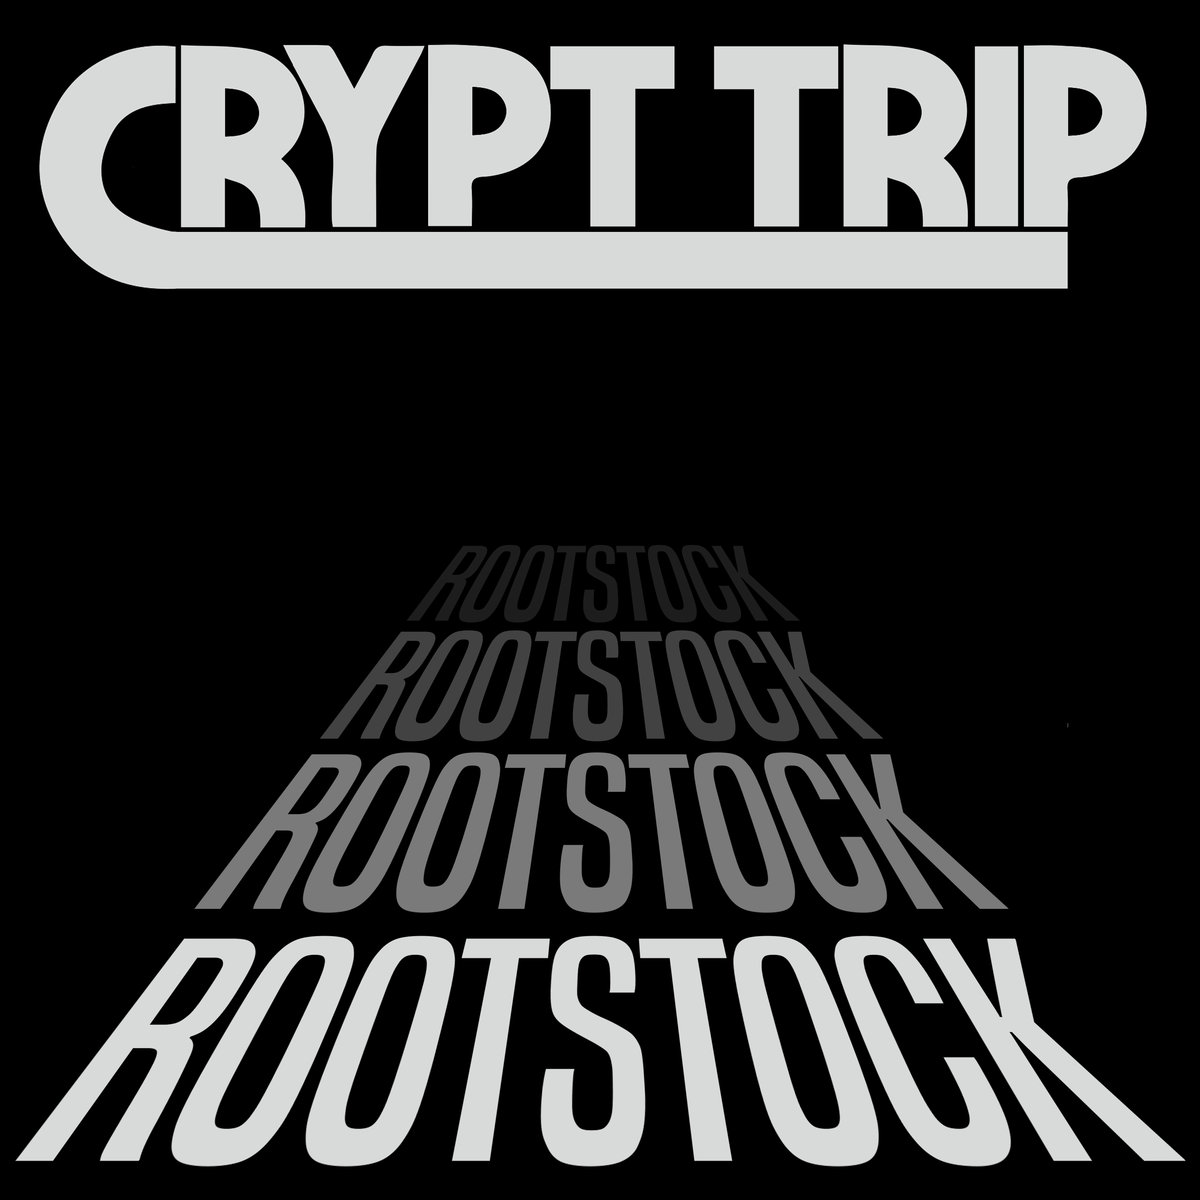 crypt-trip-rootstock